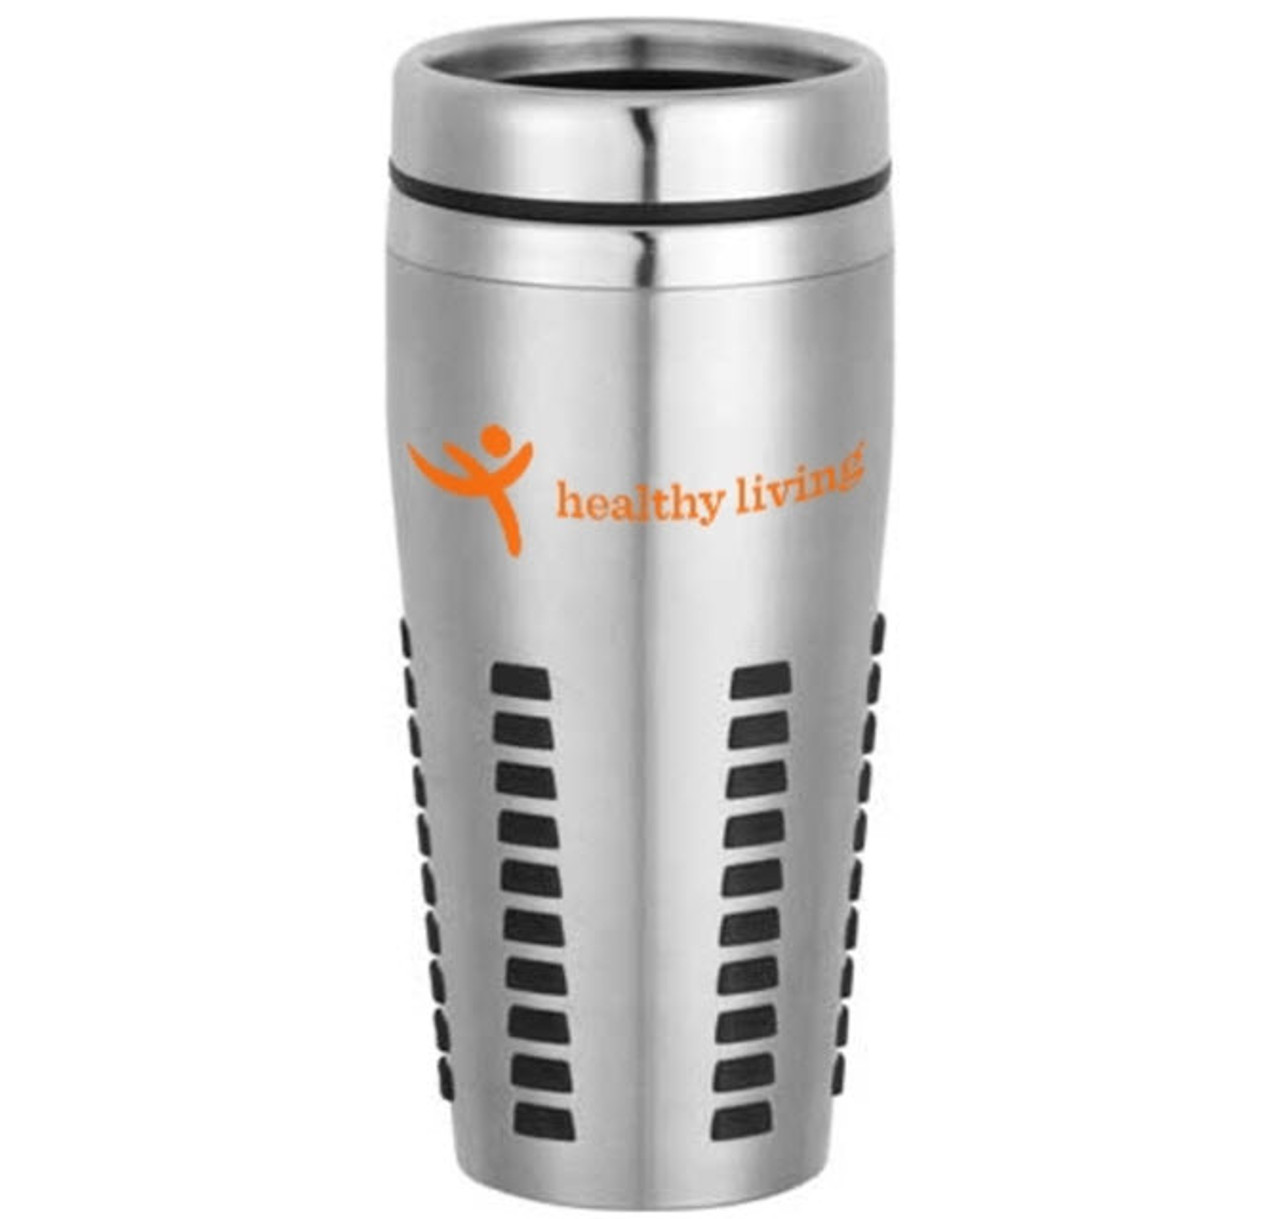 Valley 16-oz. Stainless Steel Tumbler